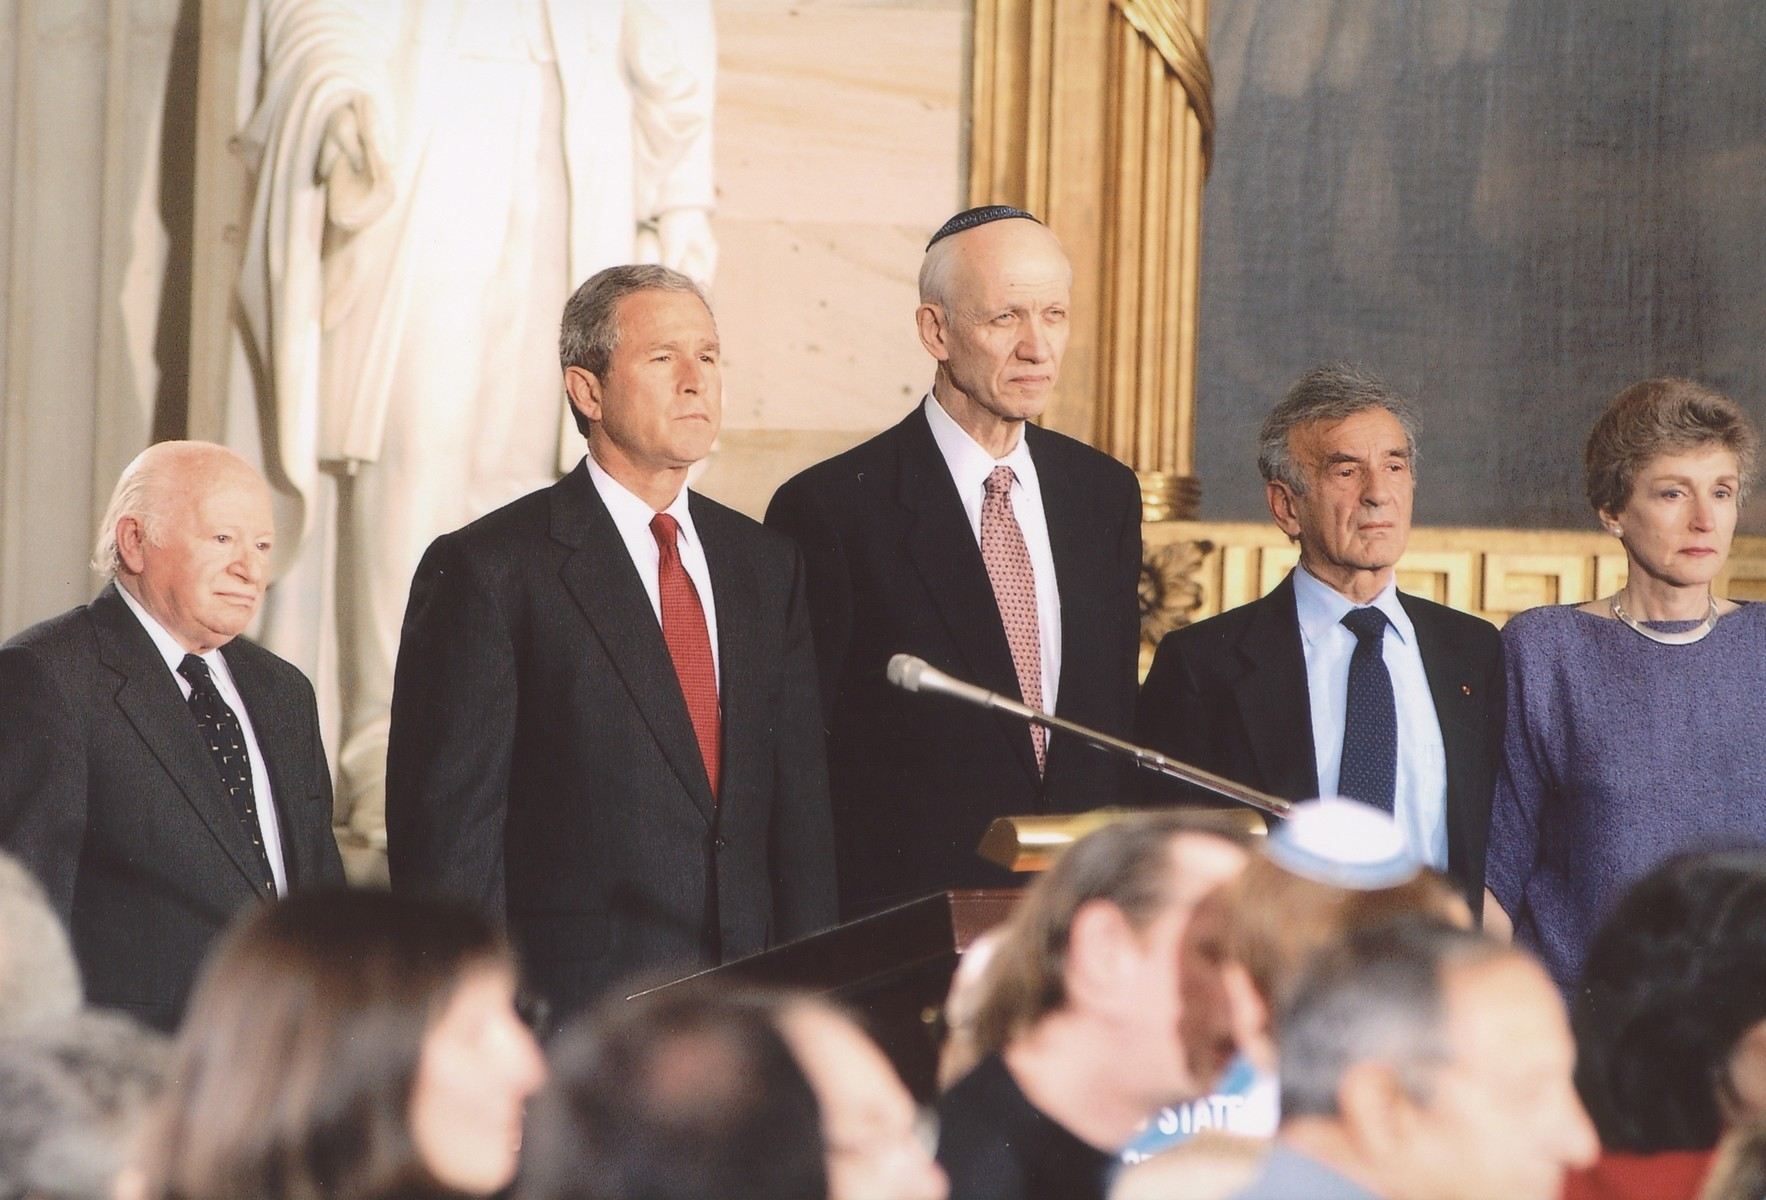 Ben Meed, George W. Bush, Rabbi Irving Greenberg, Elie Wiesel and Ruth Mandel at the 2001 Days of Remembrance ceremony, U.S. Capitol Rotunda.